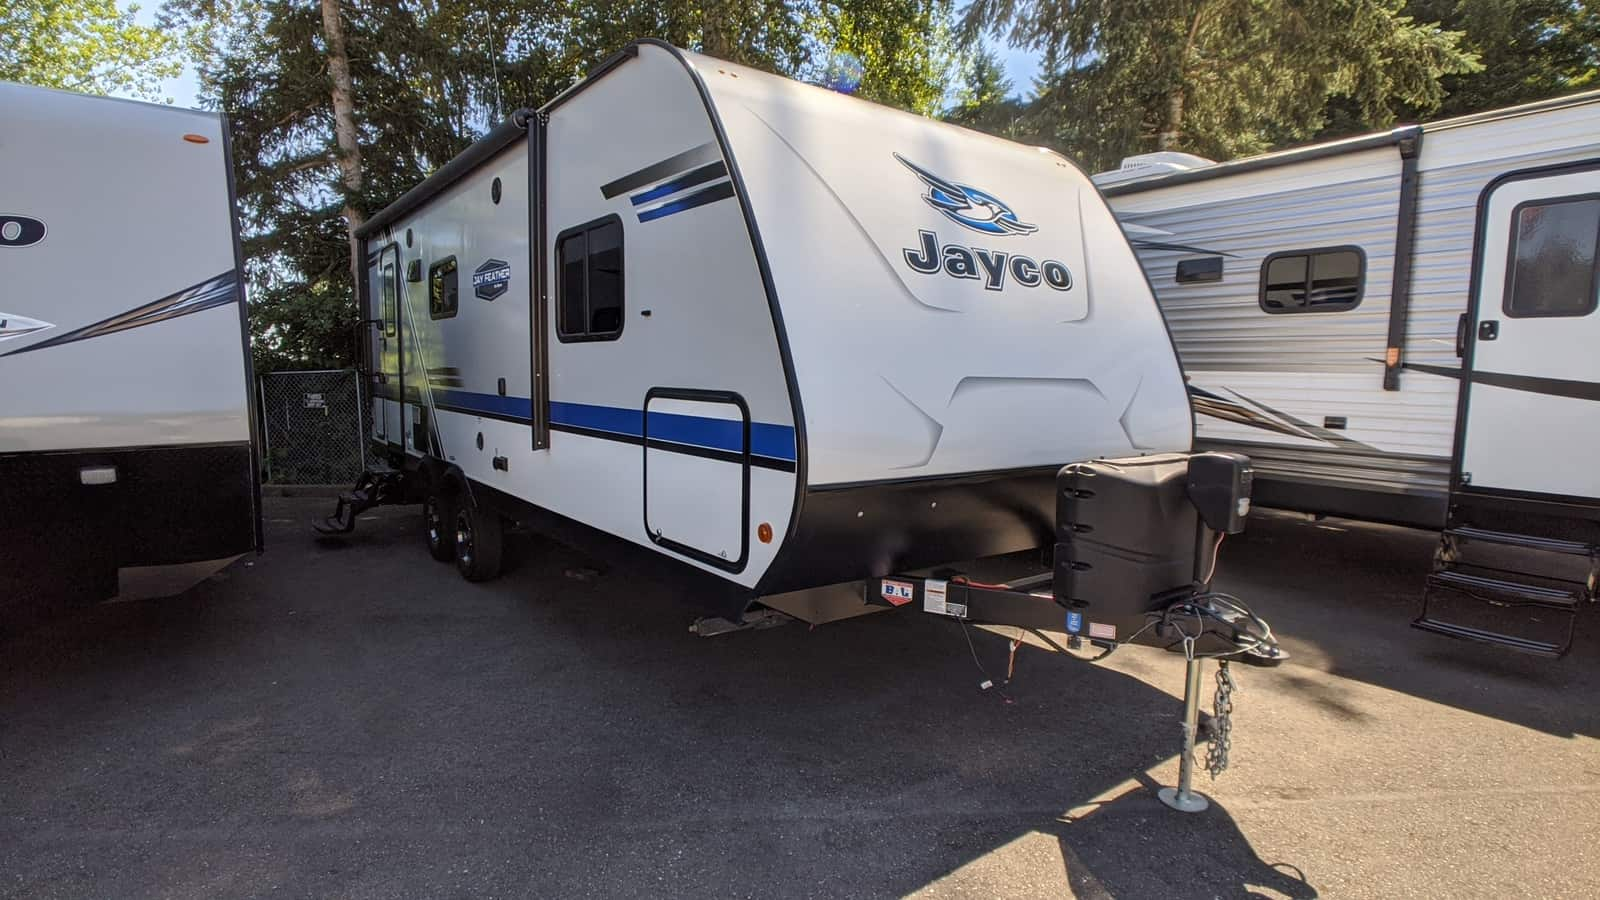 USED 2019 Jayco Jay Feather 23RBM